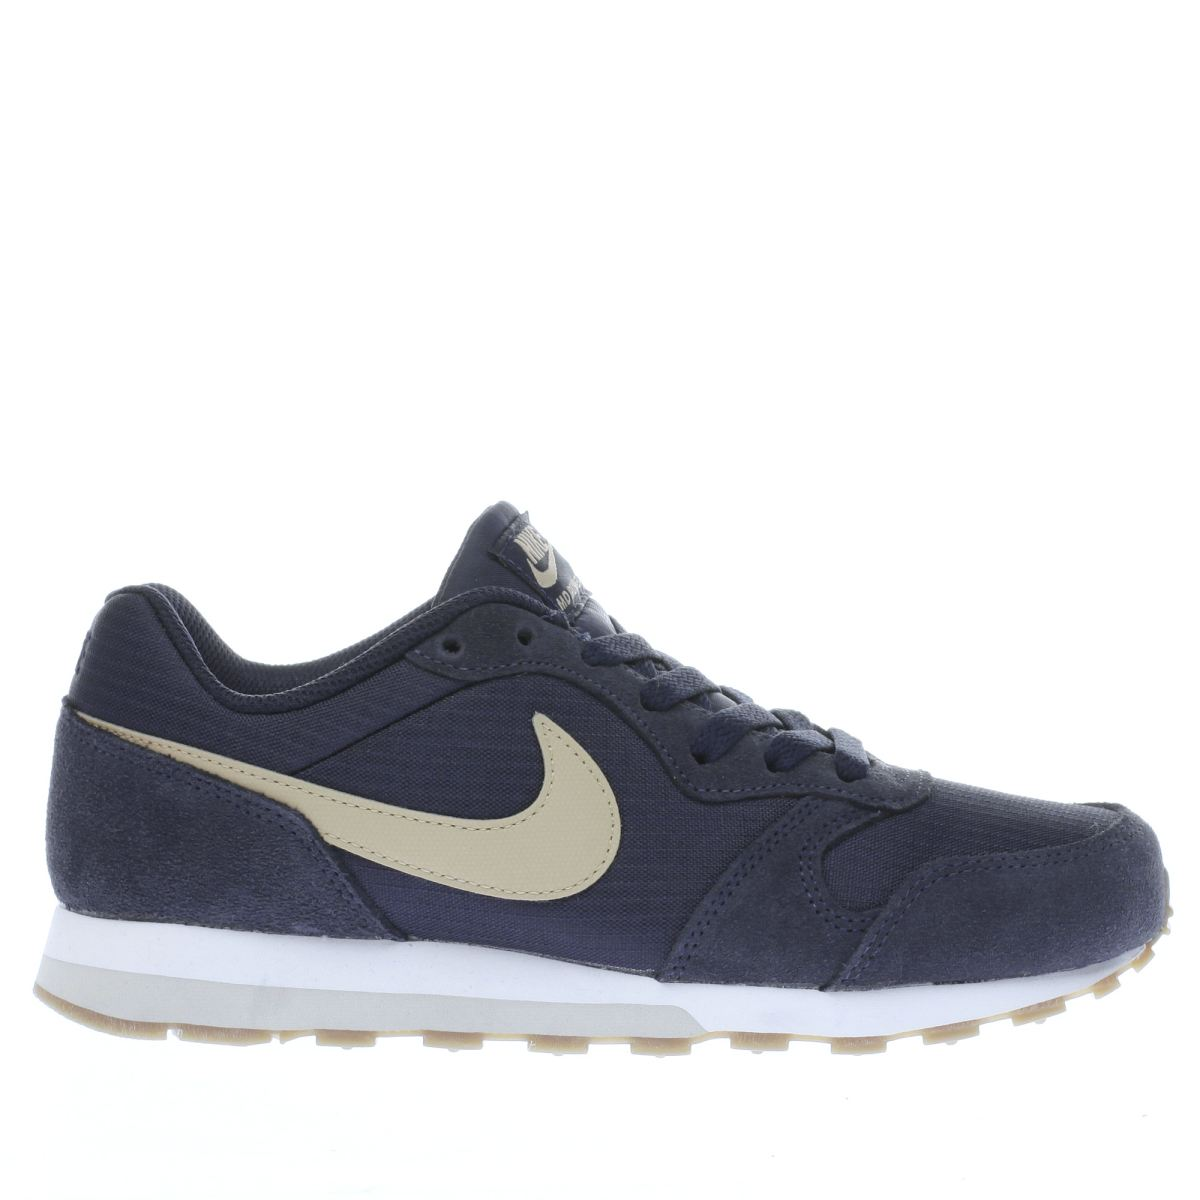 nike navy & stone md runner 2 Boys Youth Trainers